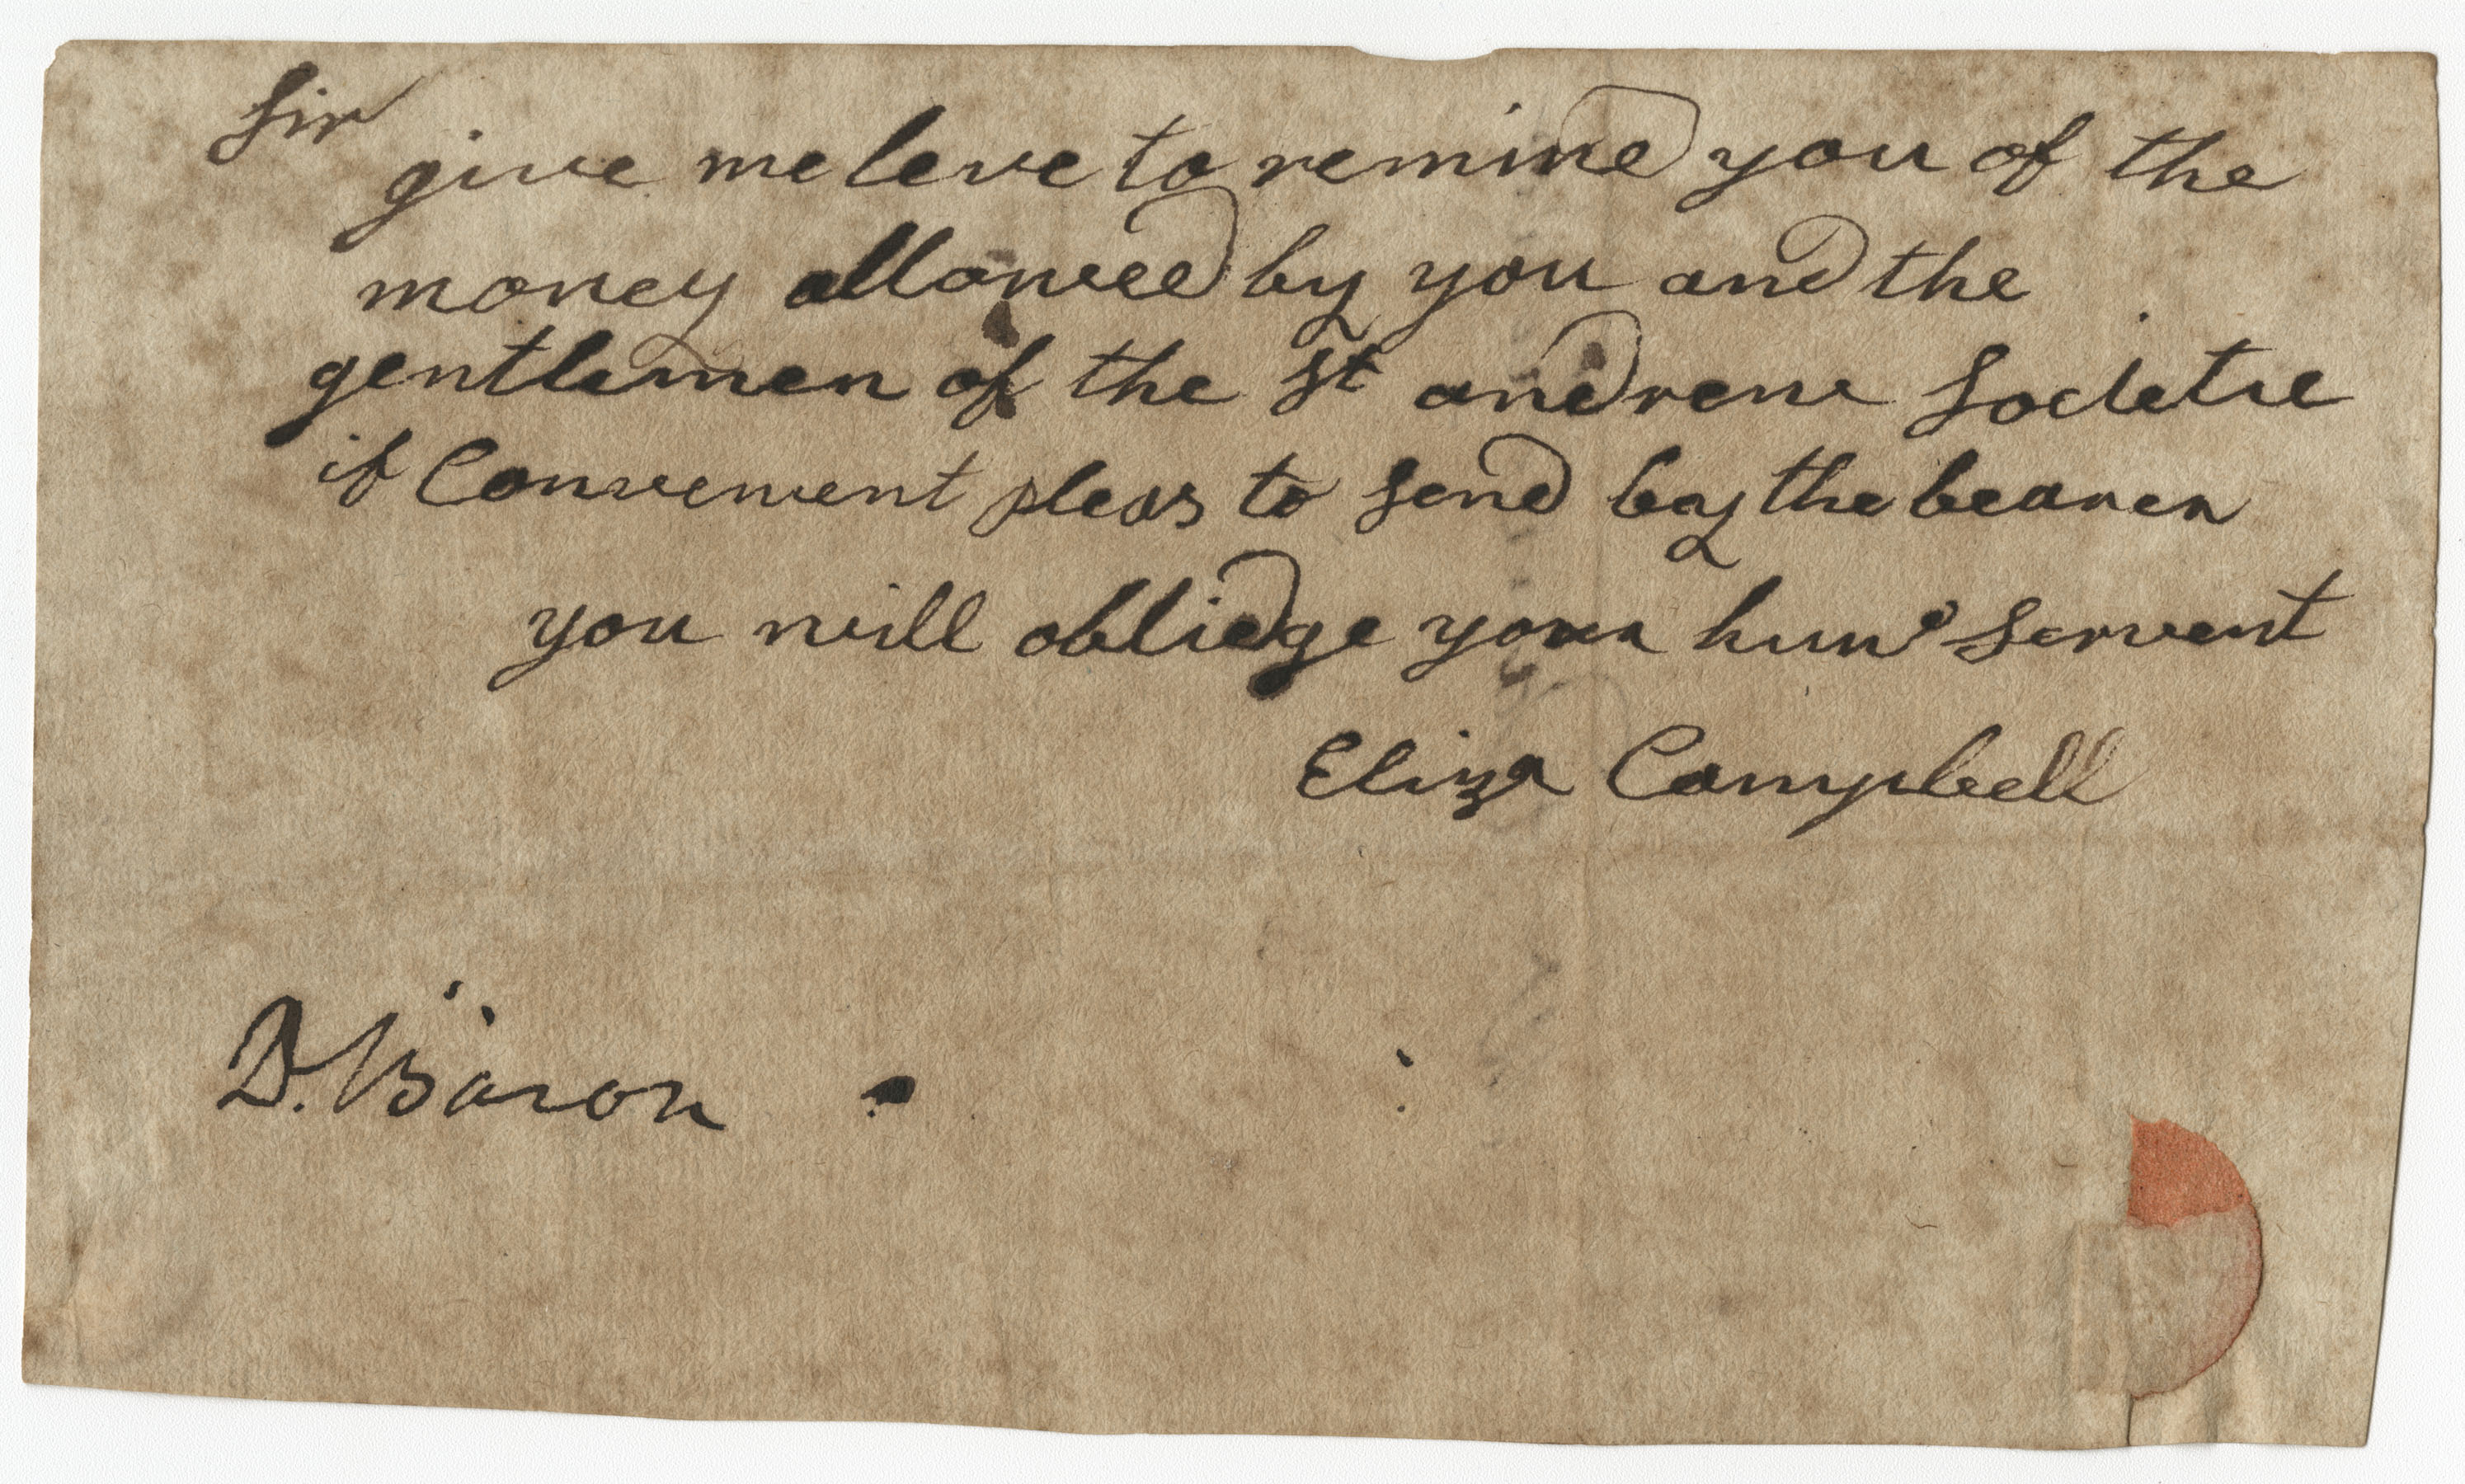 Petition from Eliza Campbell to the St. Andrew's Society